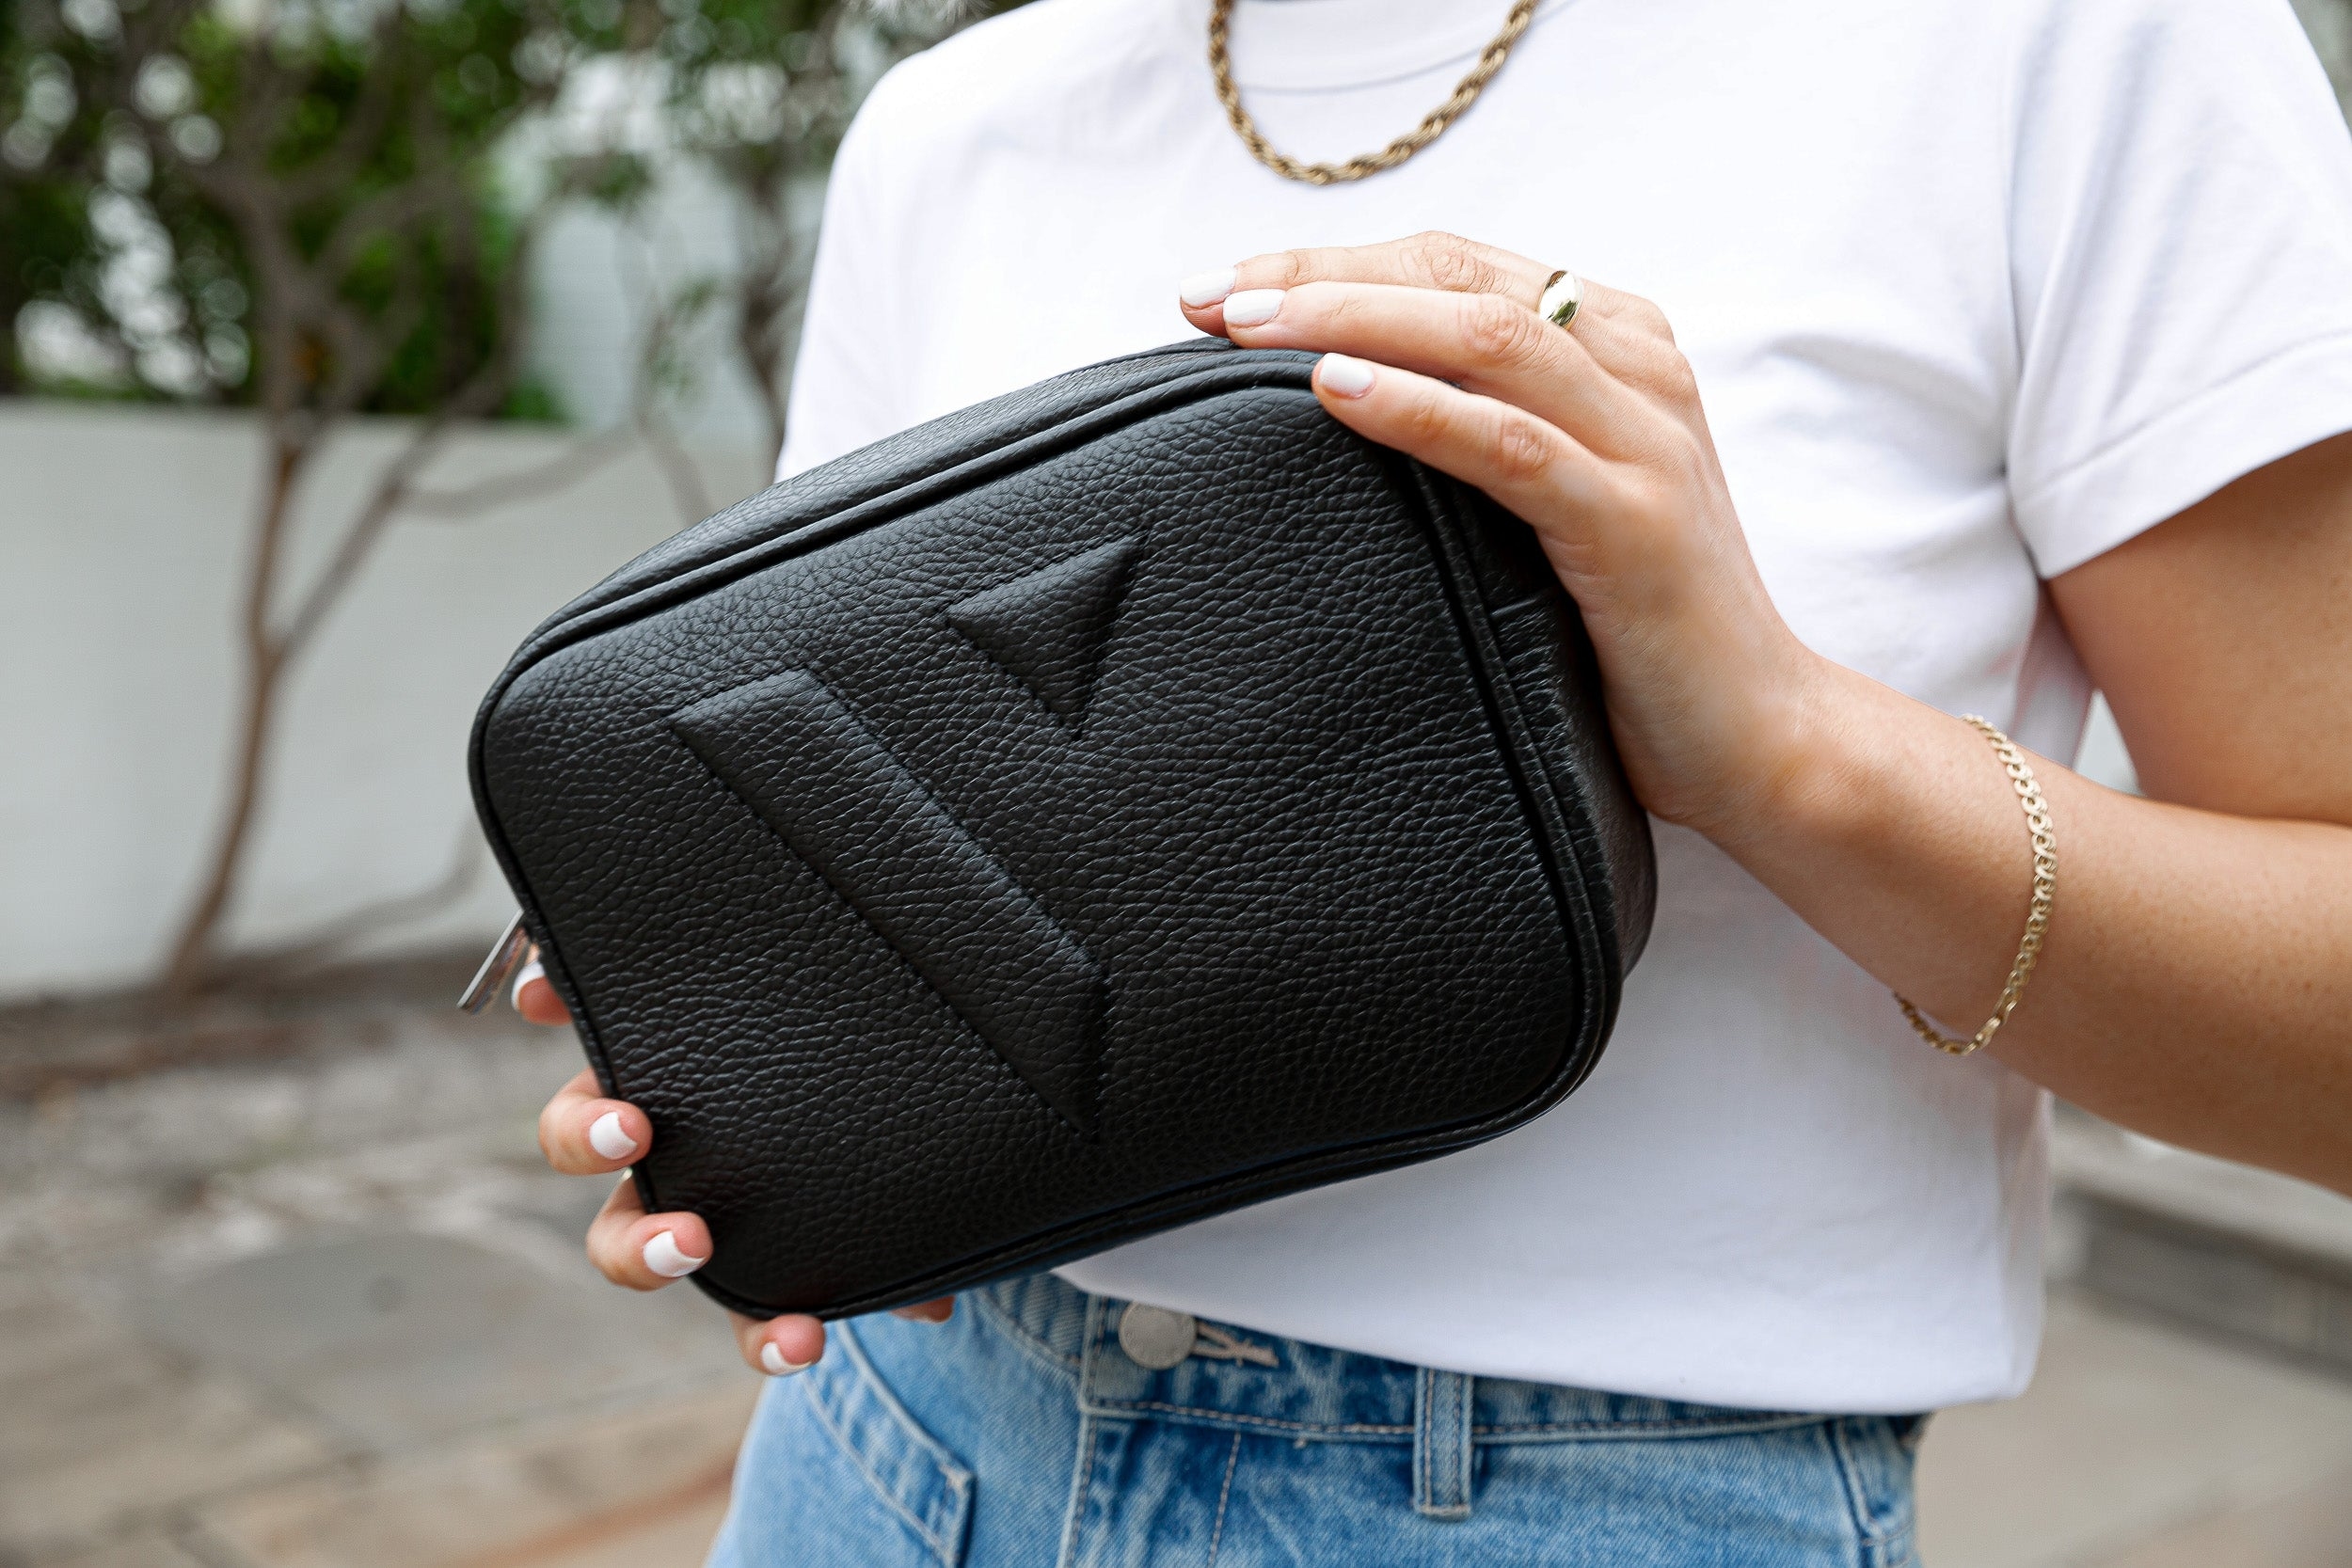 VESTIRSI VANESSA CROSSBODY BAG IN BLACK AS A CLUTCH